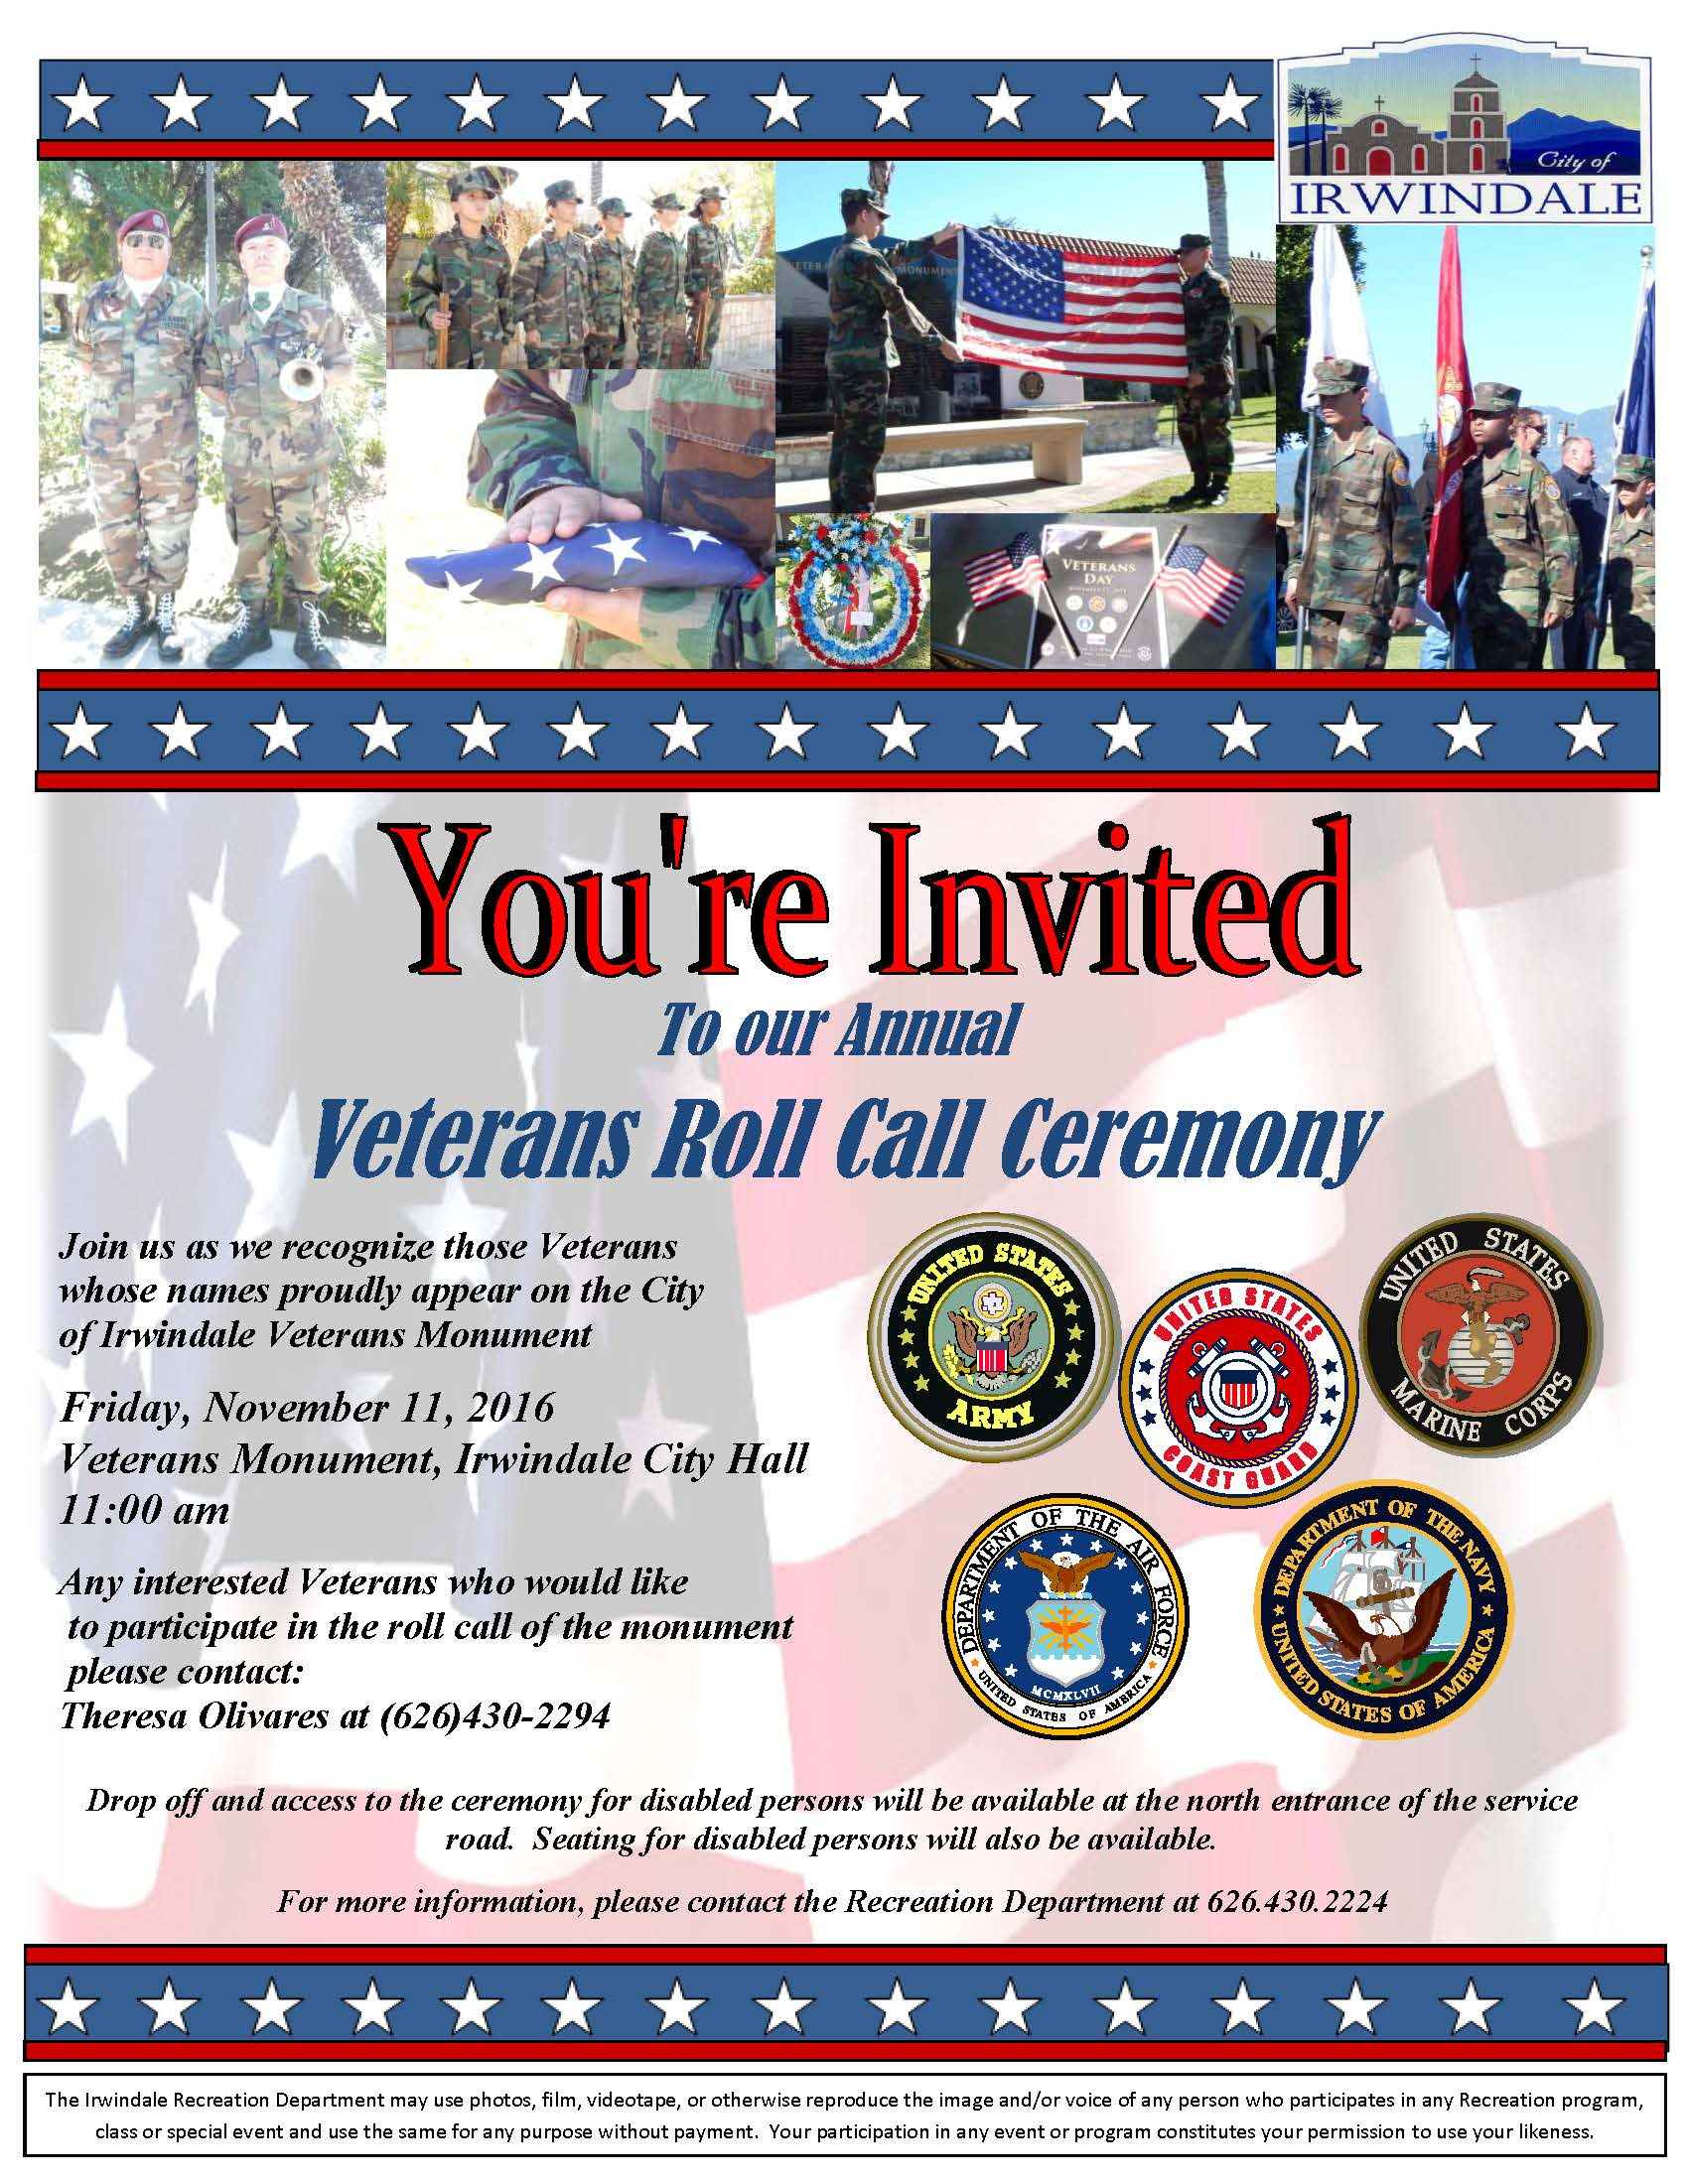 veterans memorial flyer16-1.jpg